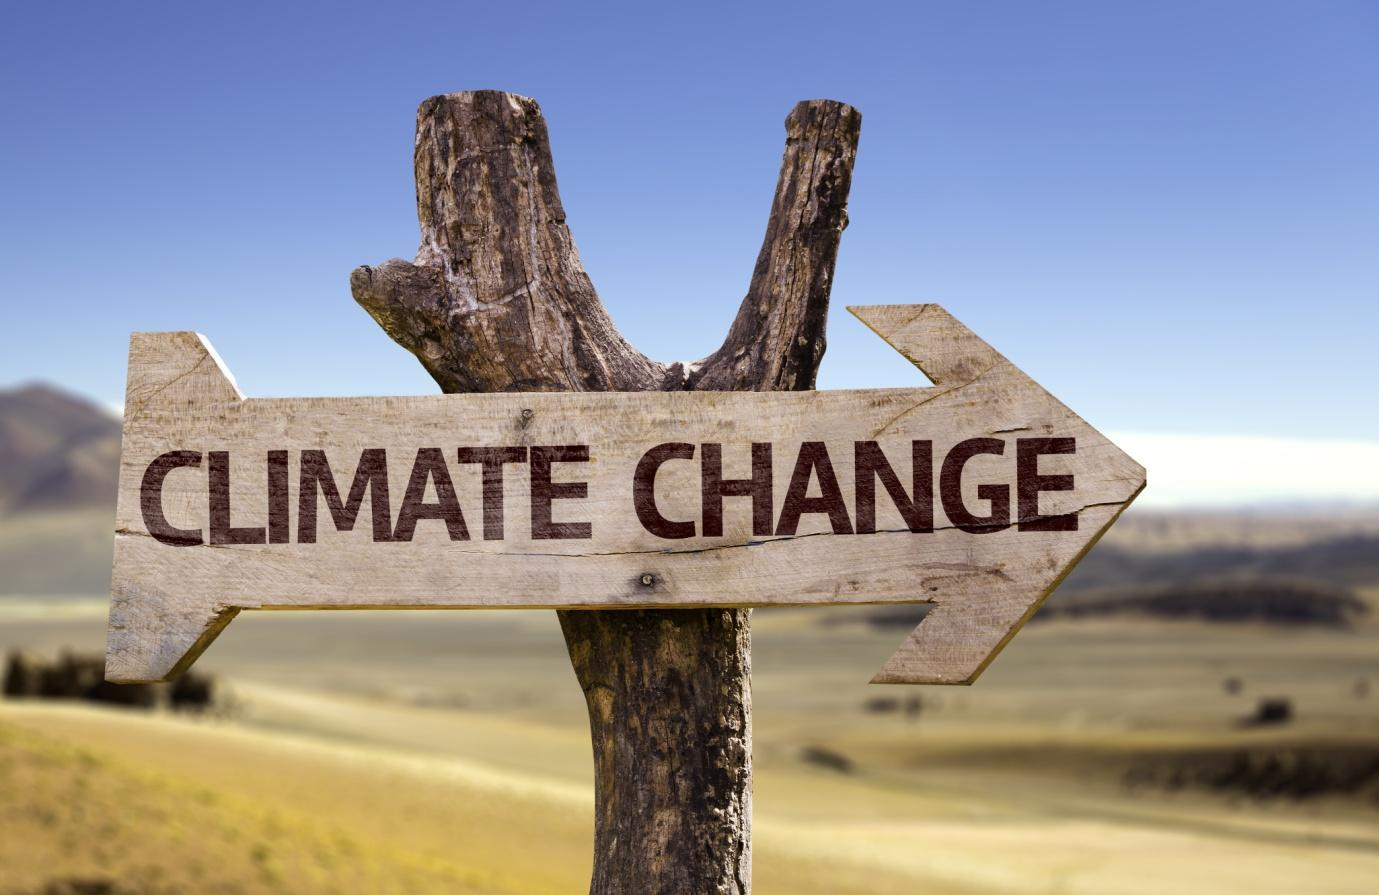 Climate Change written on an arrow sign